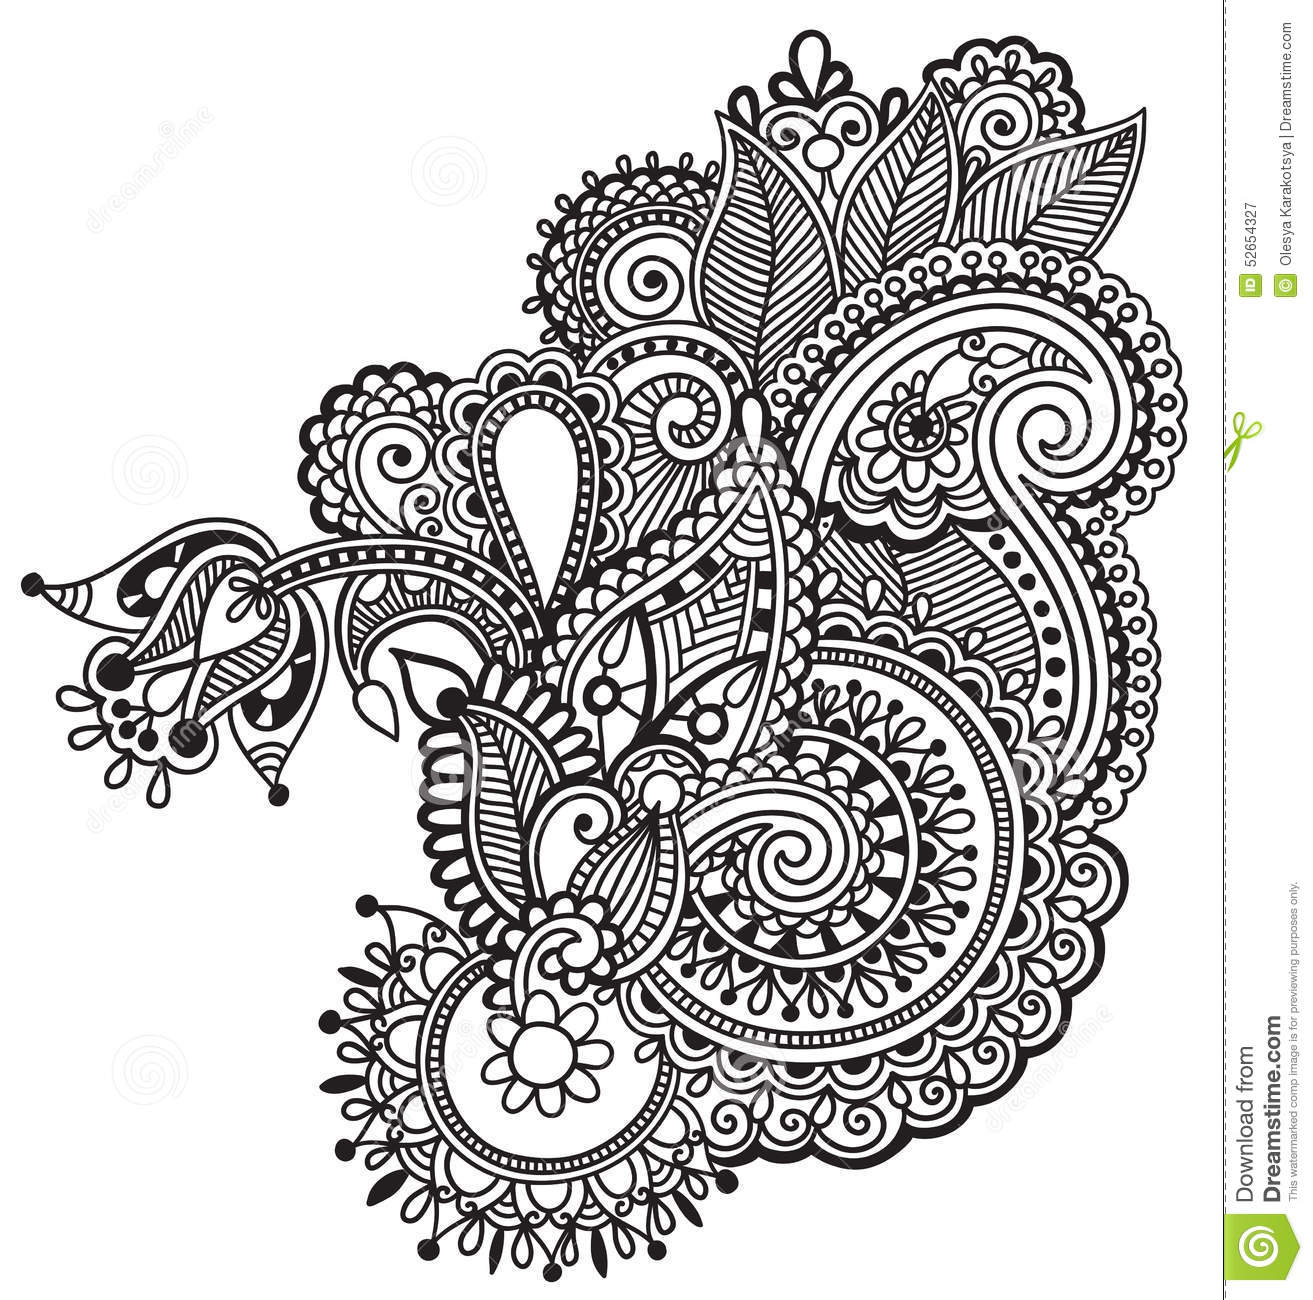 Line In Art And Design : Black line art ornate flower design ukrainian stock